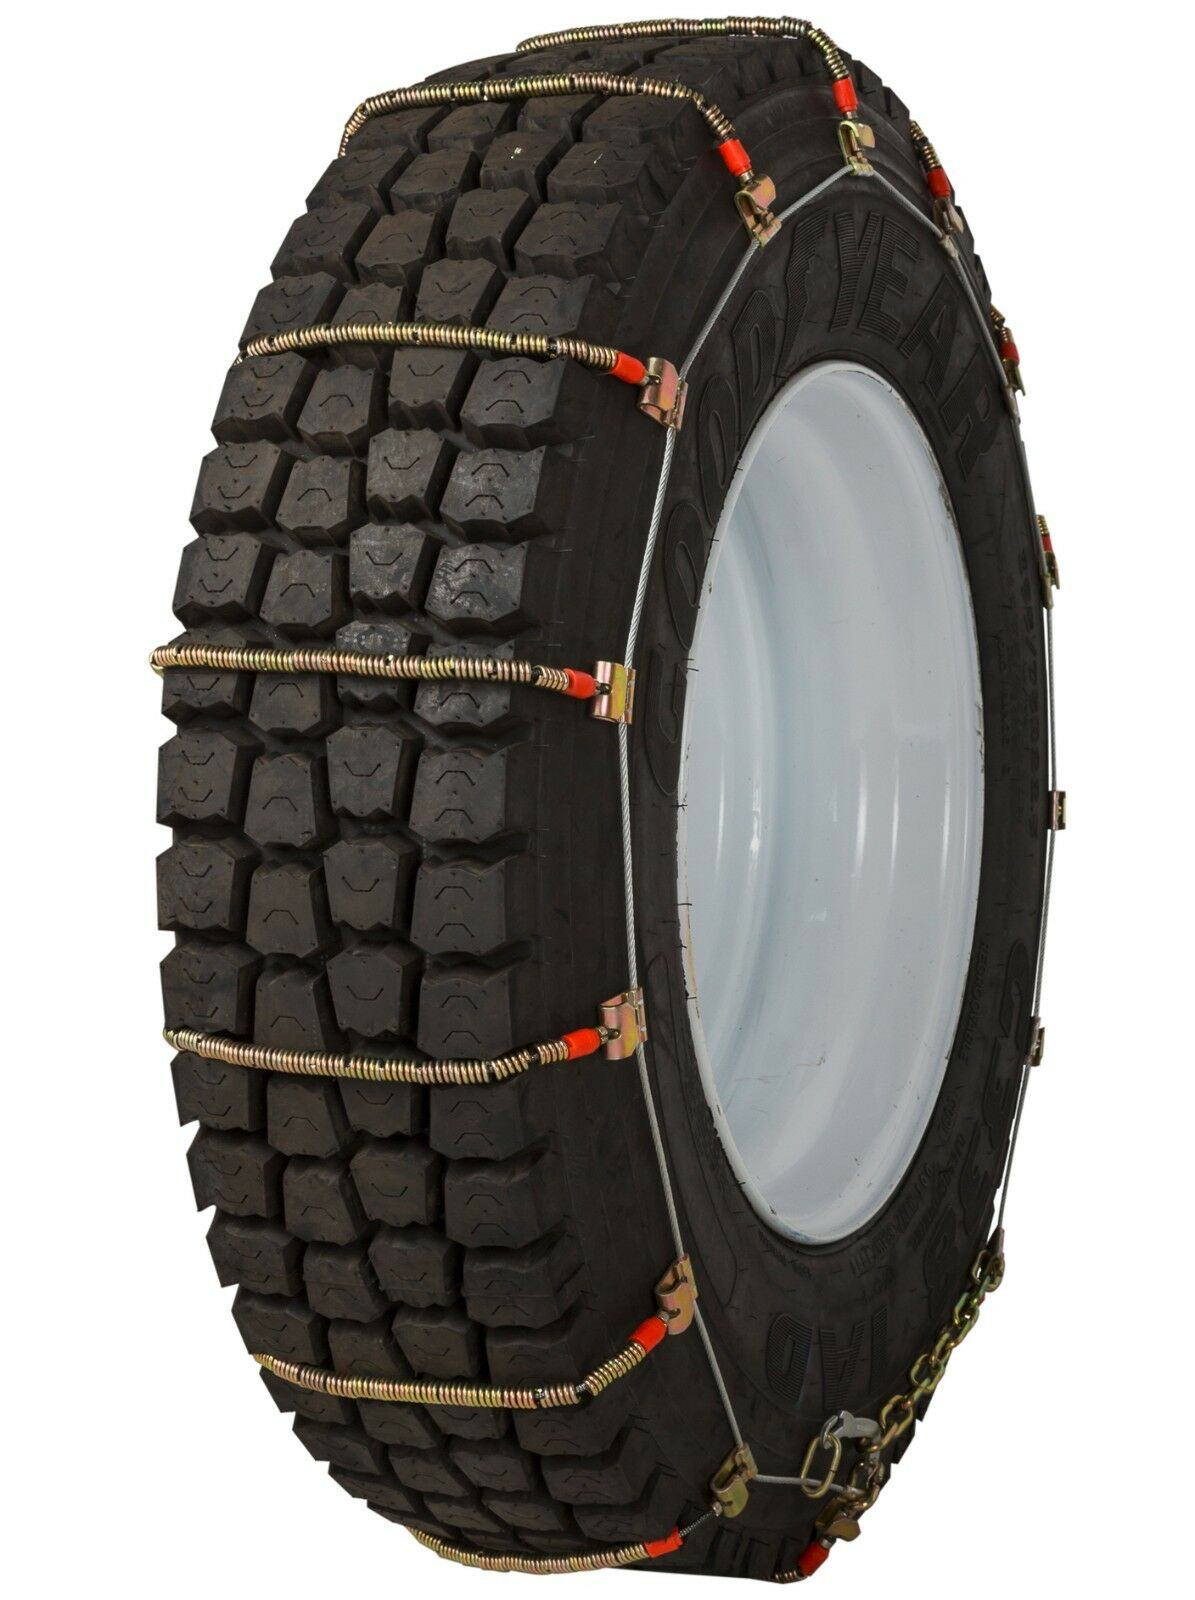 205//70-15 205//70R15 Tire Chains Cobra Cable Snow Ice Traction Passenger Vehicle